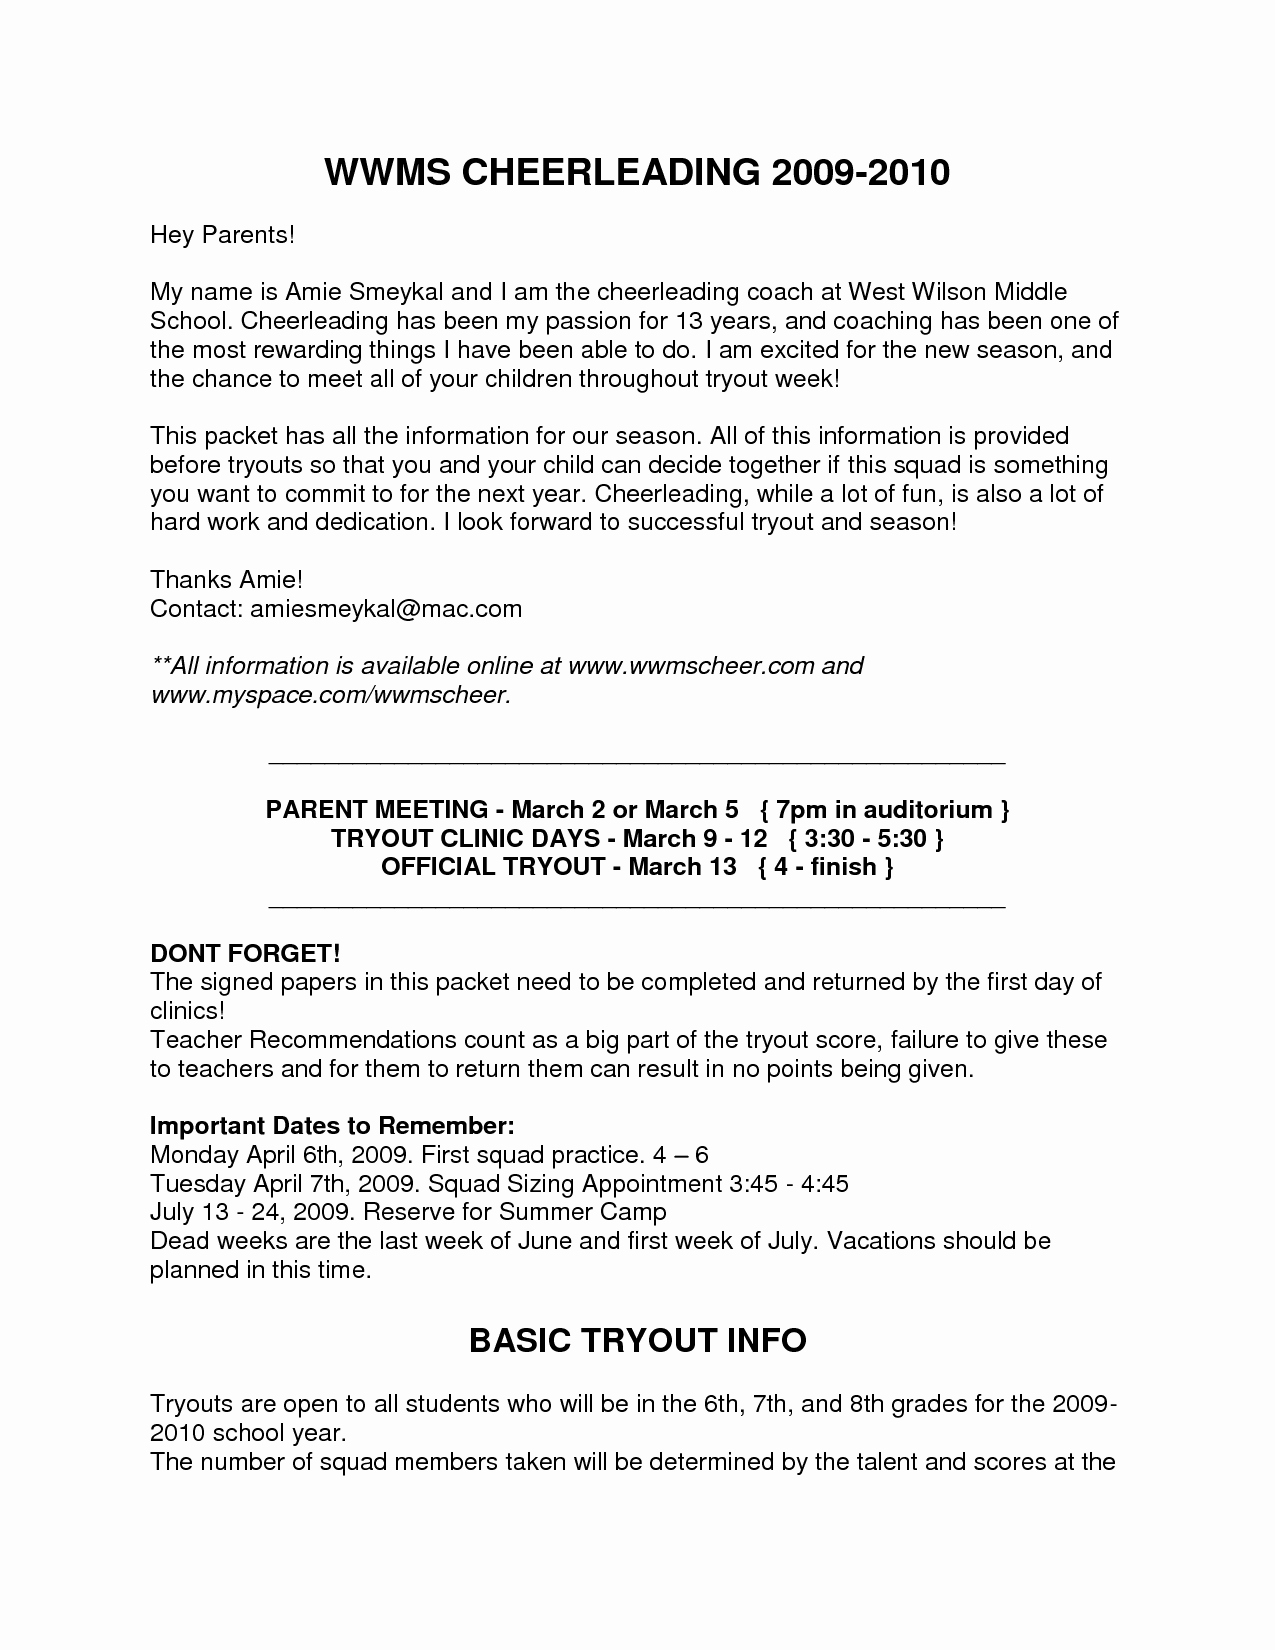 Summer Camp Letter to Parents Template Examples | Letter Template ...